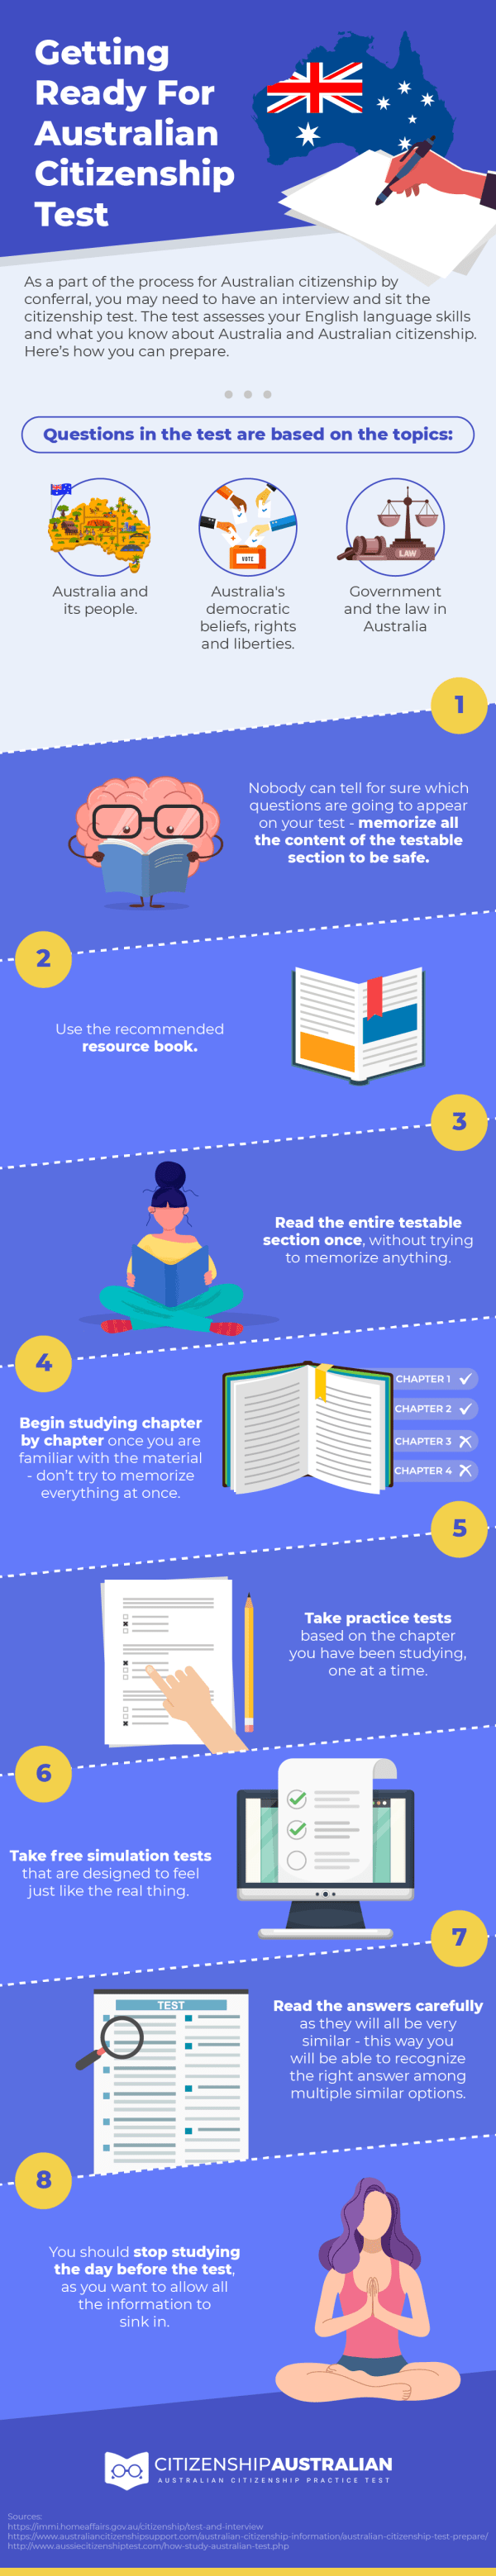 ready-for-citizenship-test-infographic